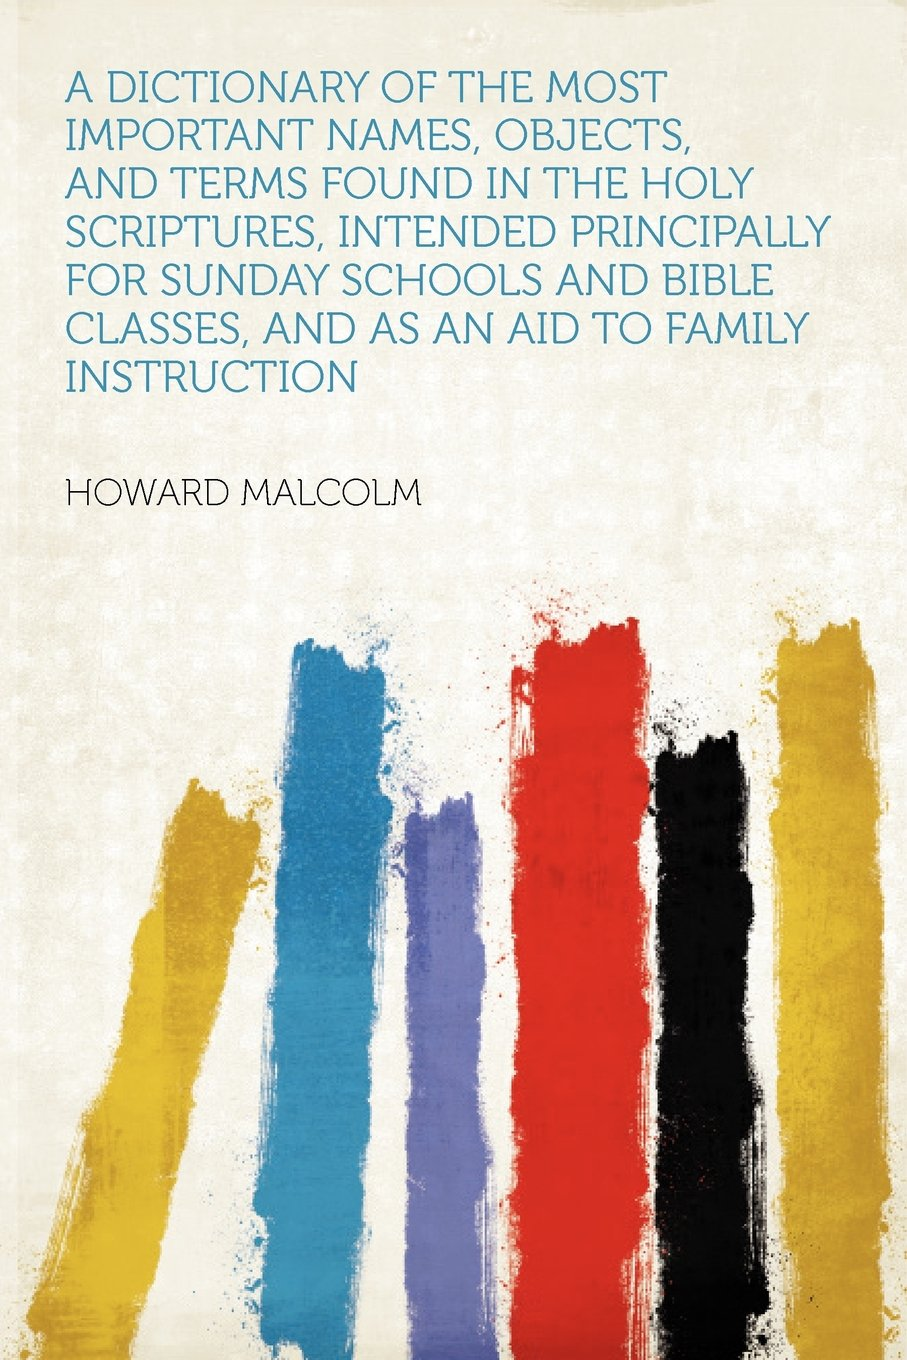 Download A Dictionary of the Most Important Names, Objects, and Terms Found in the Holy Scriptures, Intended Principally for Sunday Schools and Bible Classes, and as an Aid to Family Instruction pdf epub